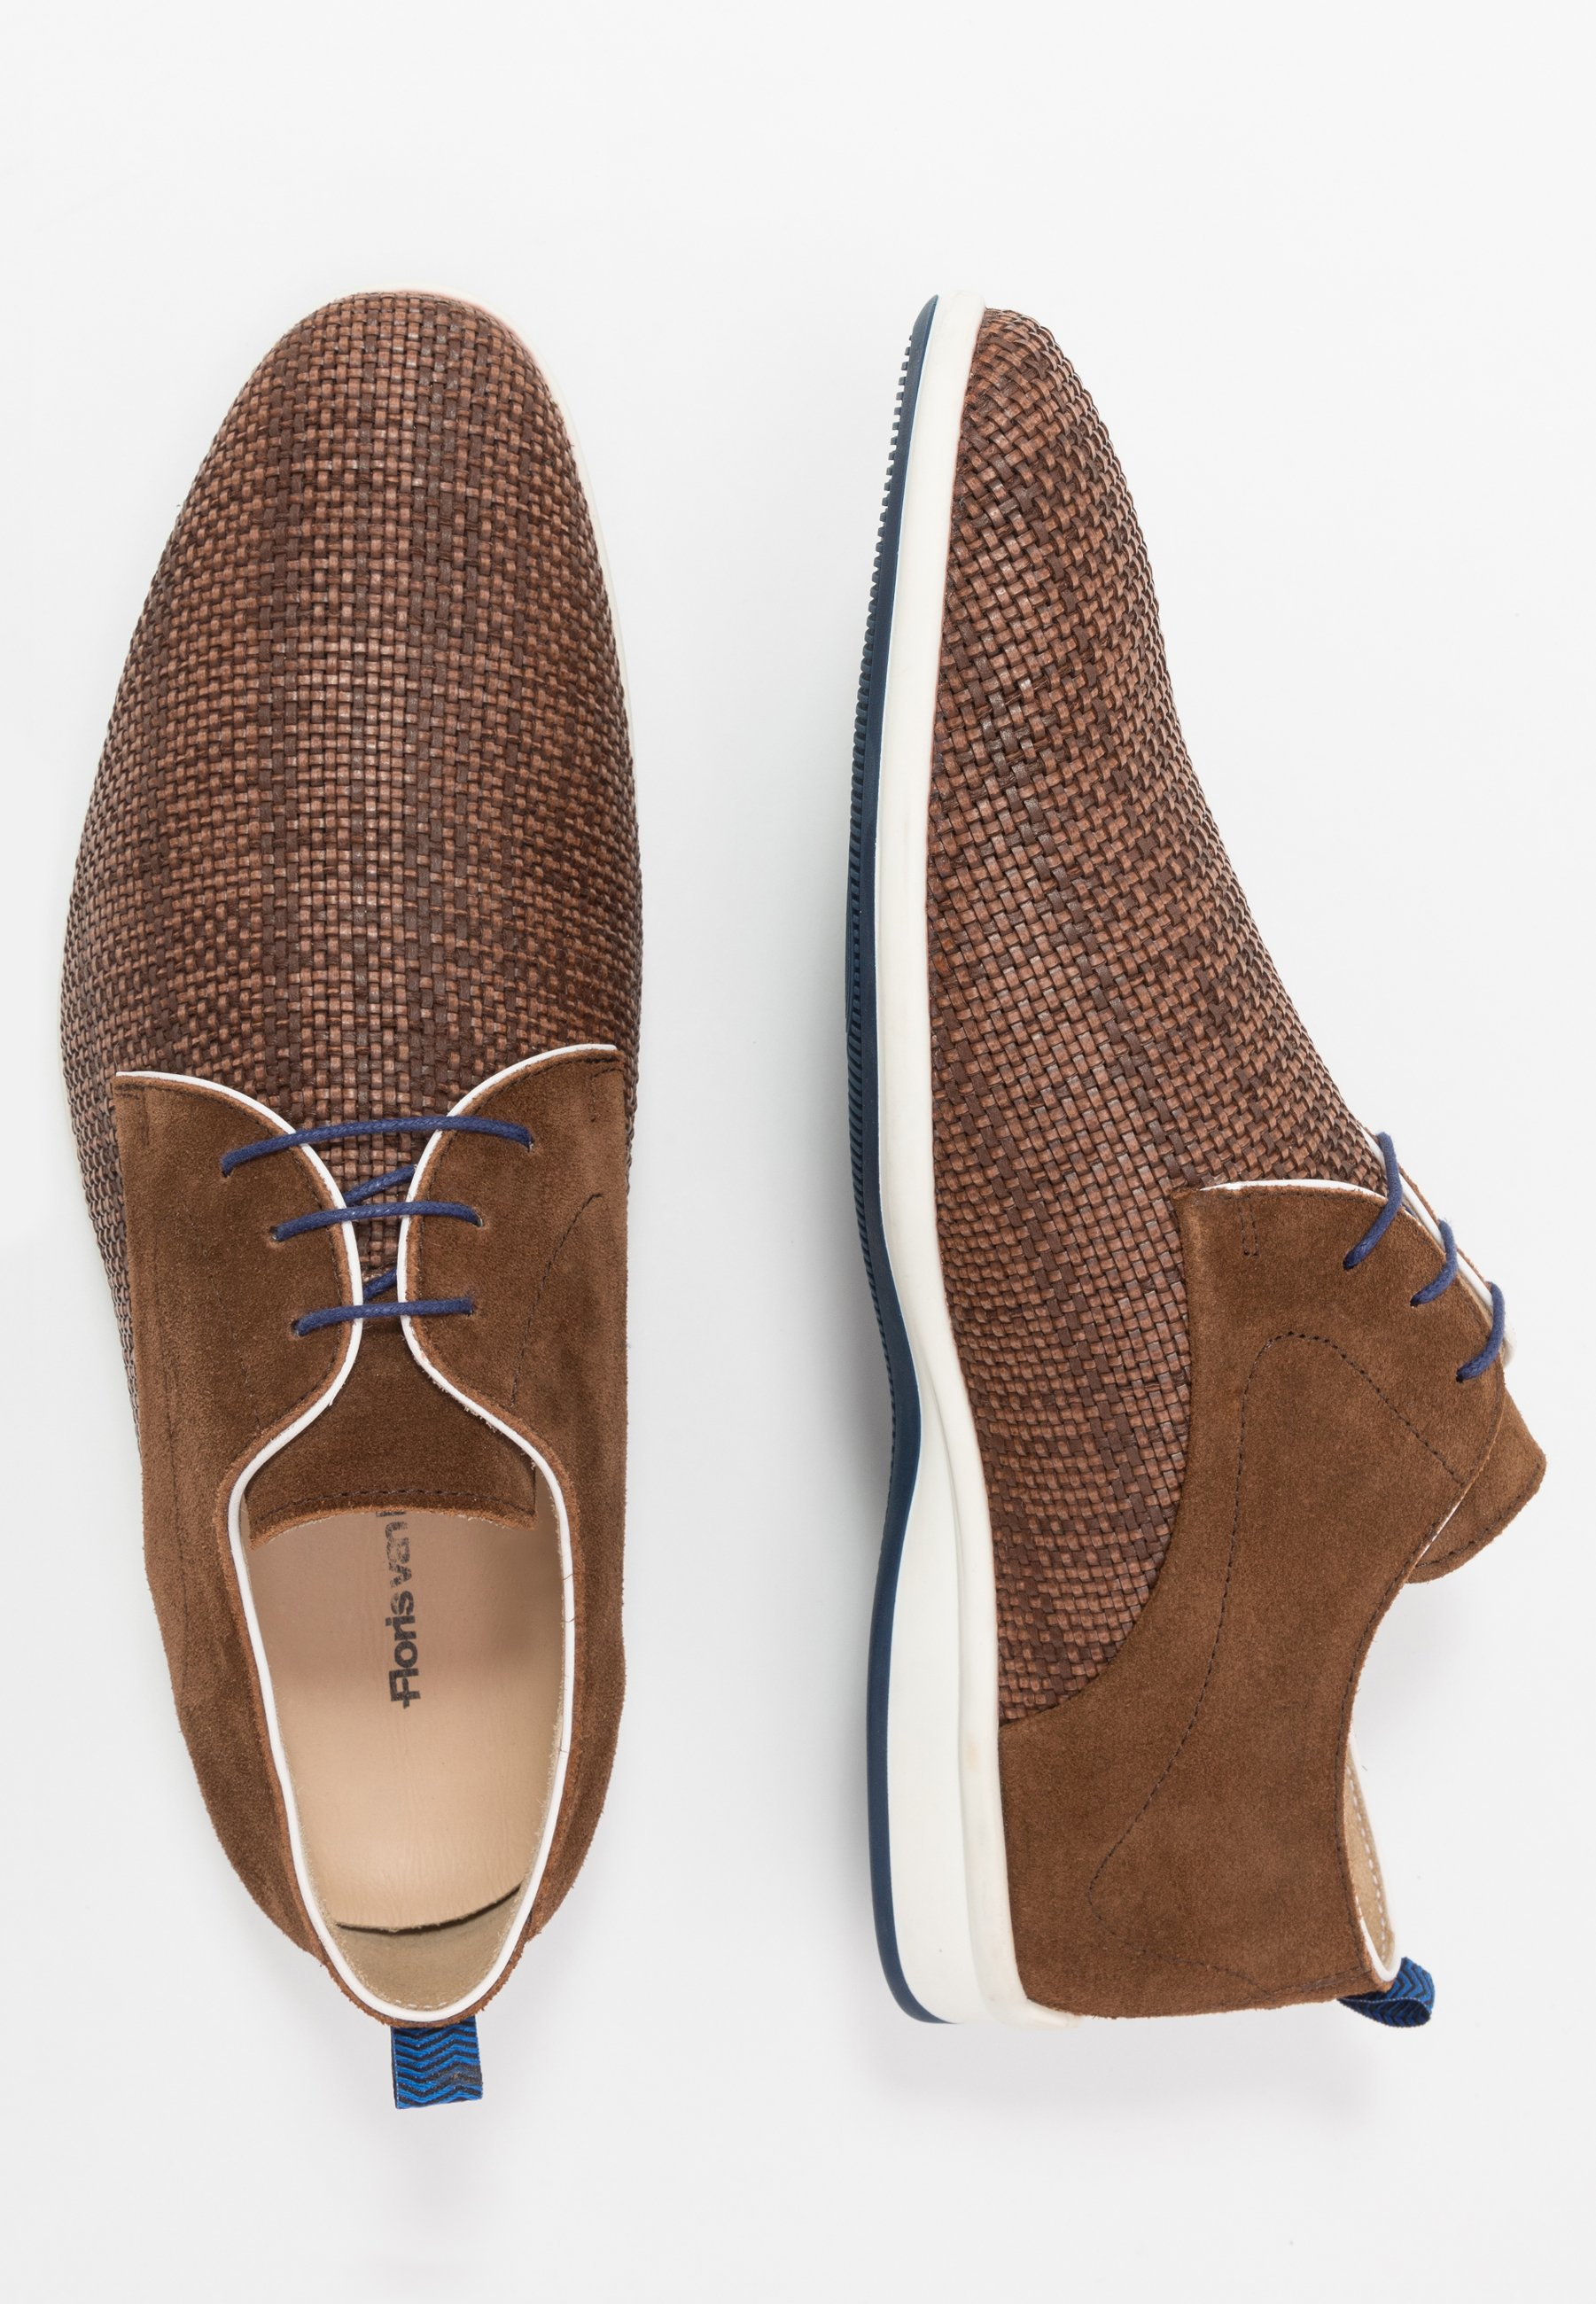 Floris van Bommel Chaussures à lacets - brown